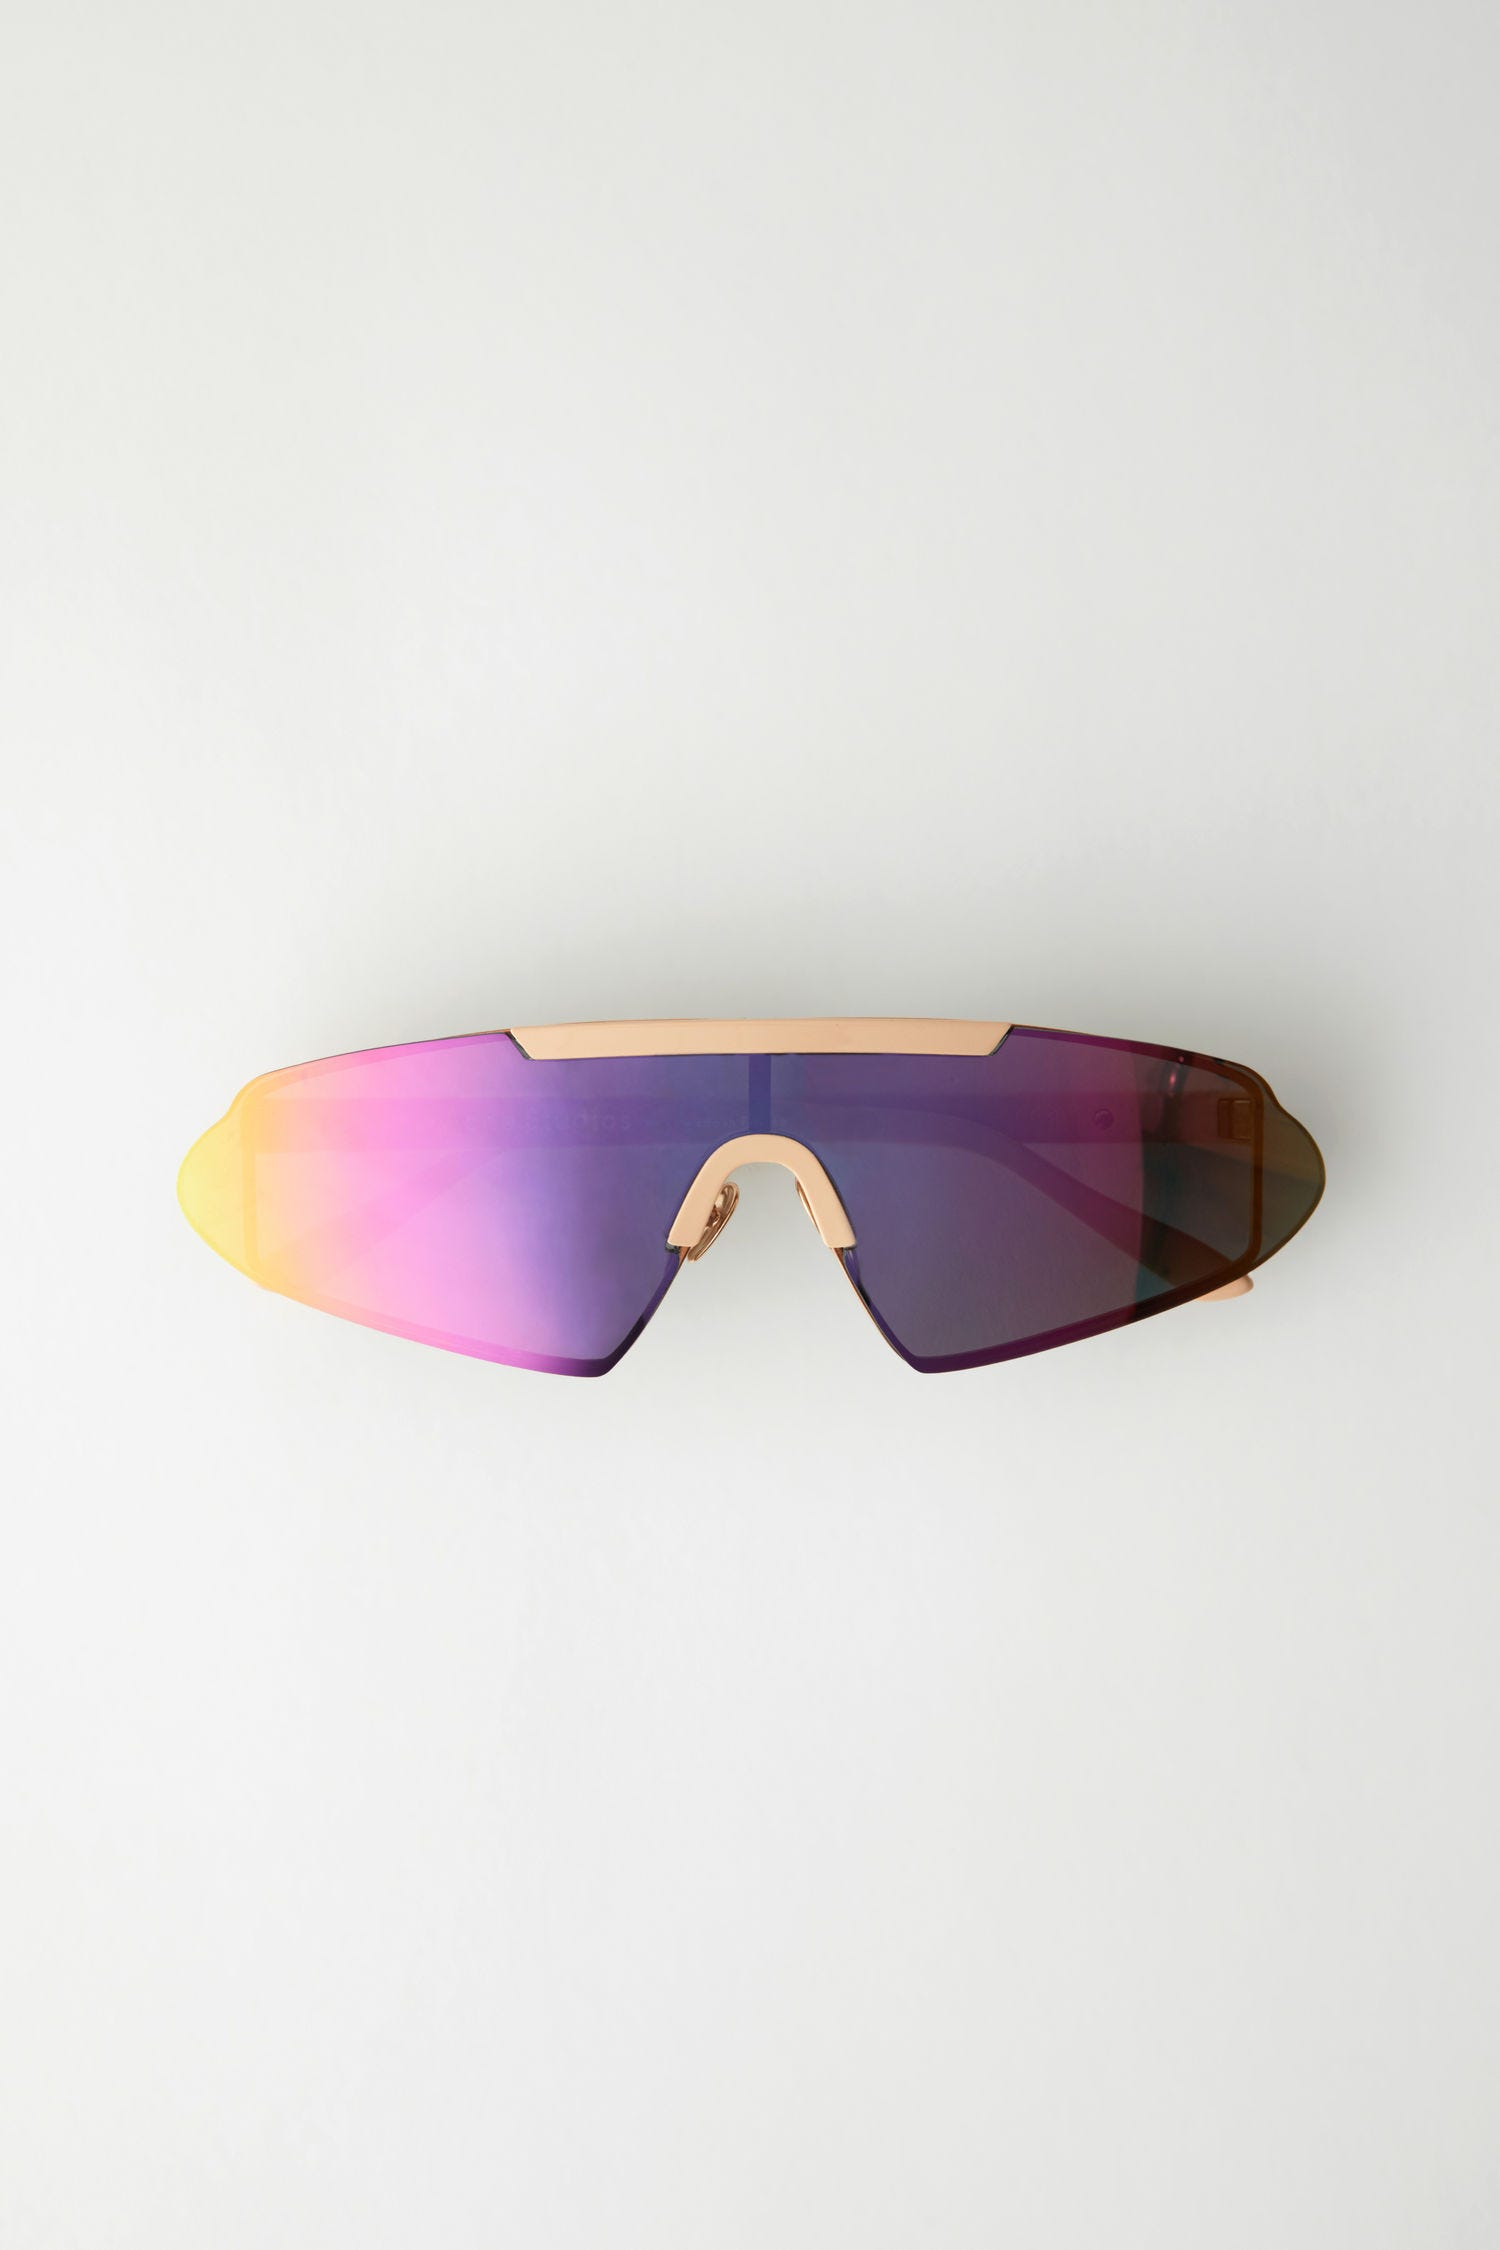 35353807cb Best Sunglasses Trend 2018 For Women To Shop